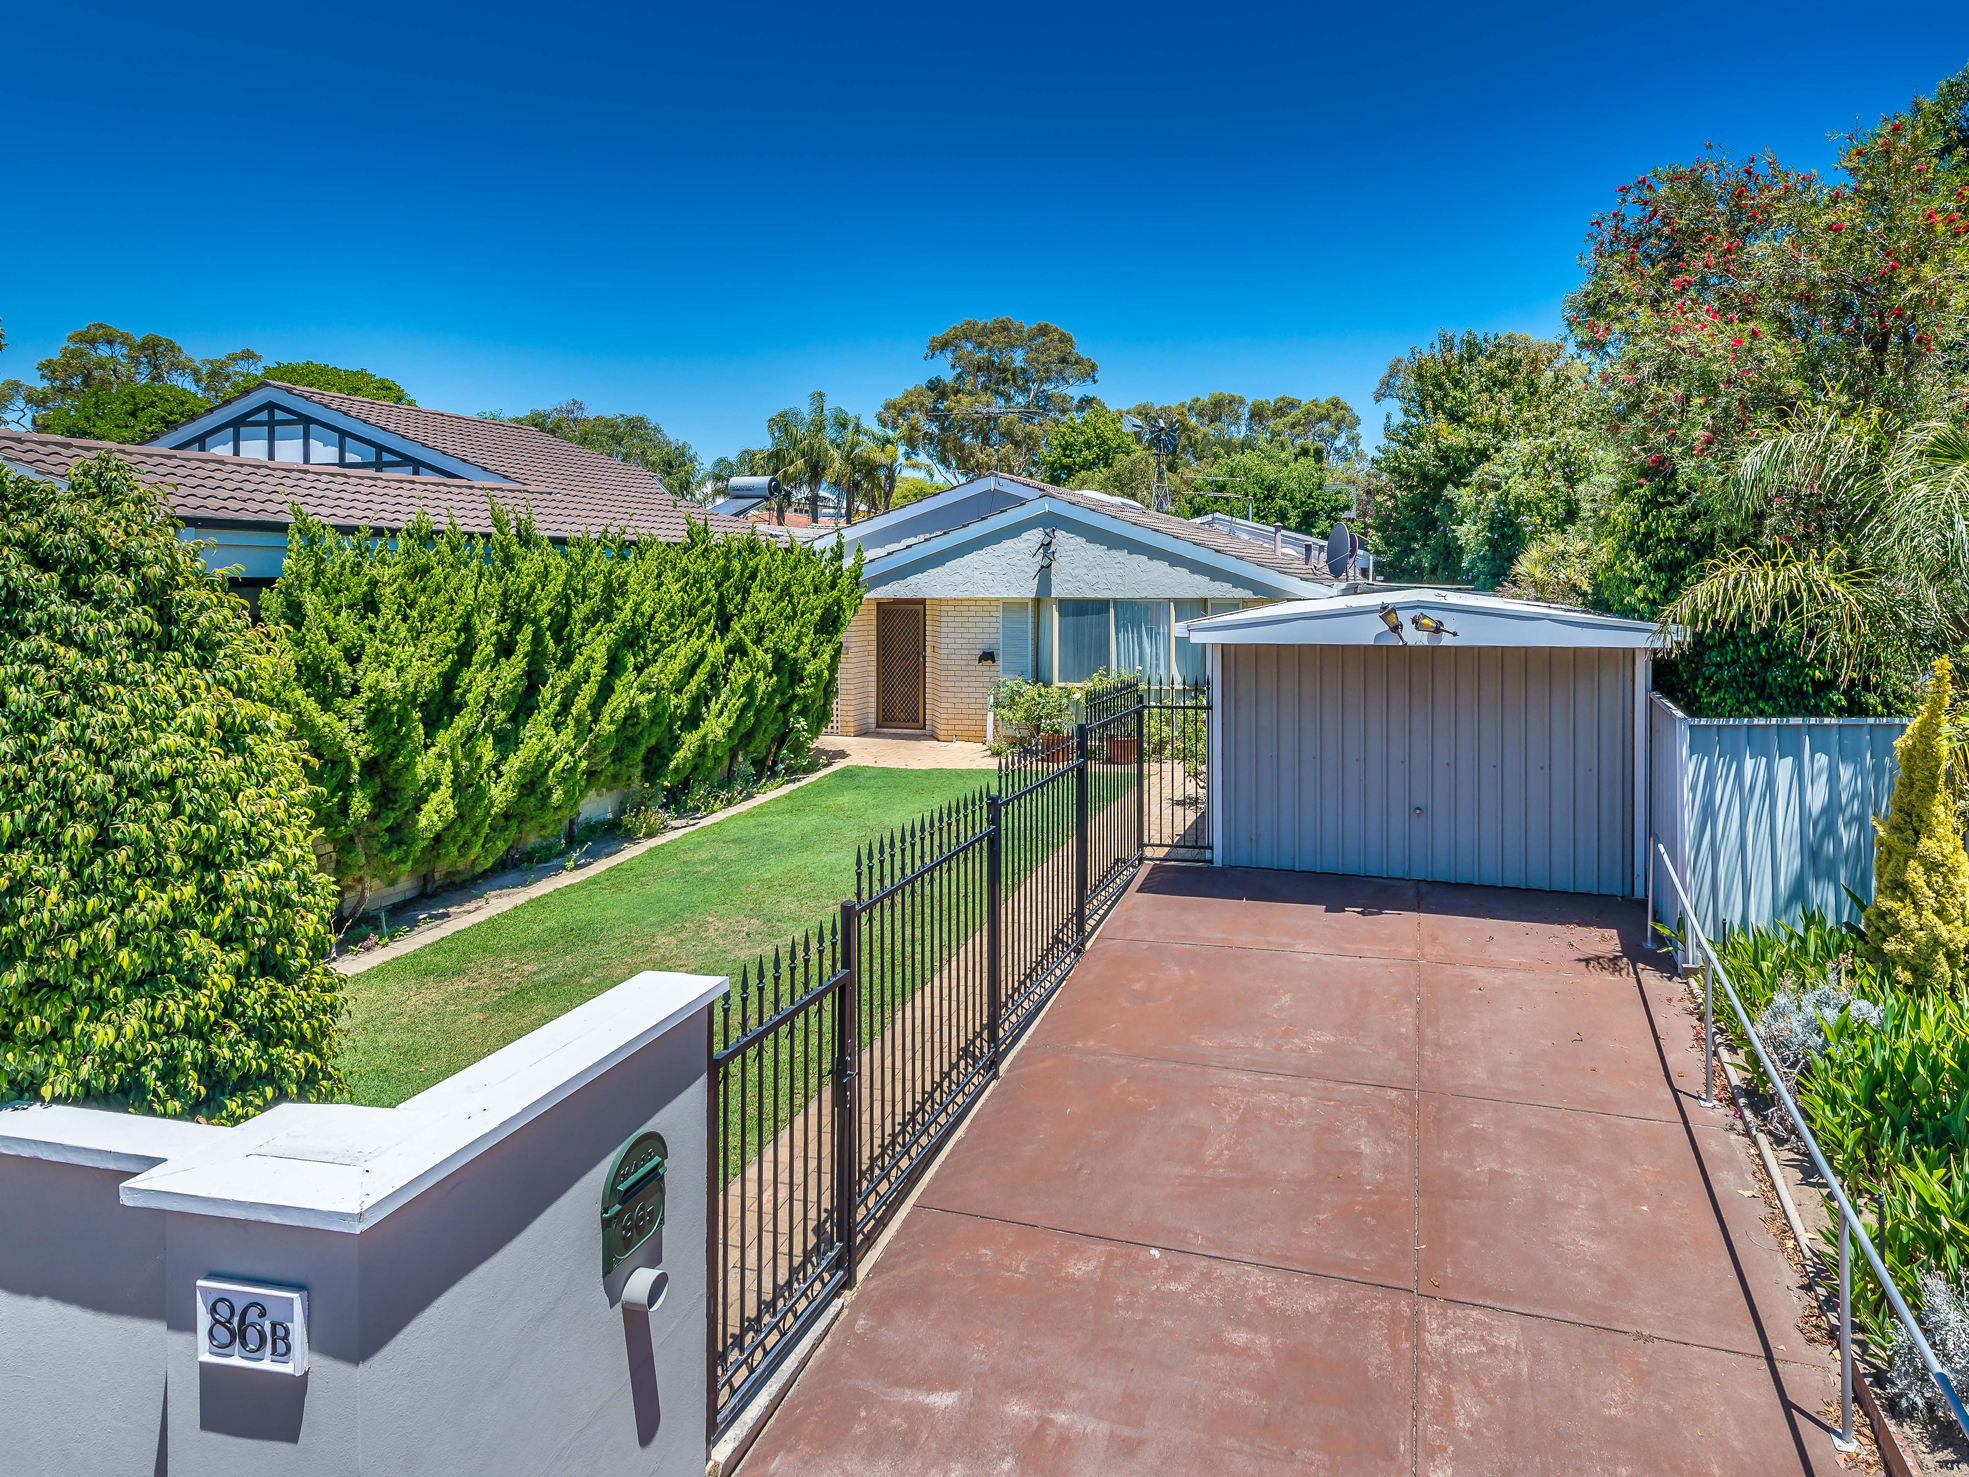 86B Waratah Avenue, Dalkeith – offers by May 29